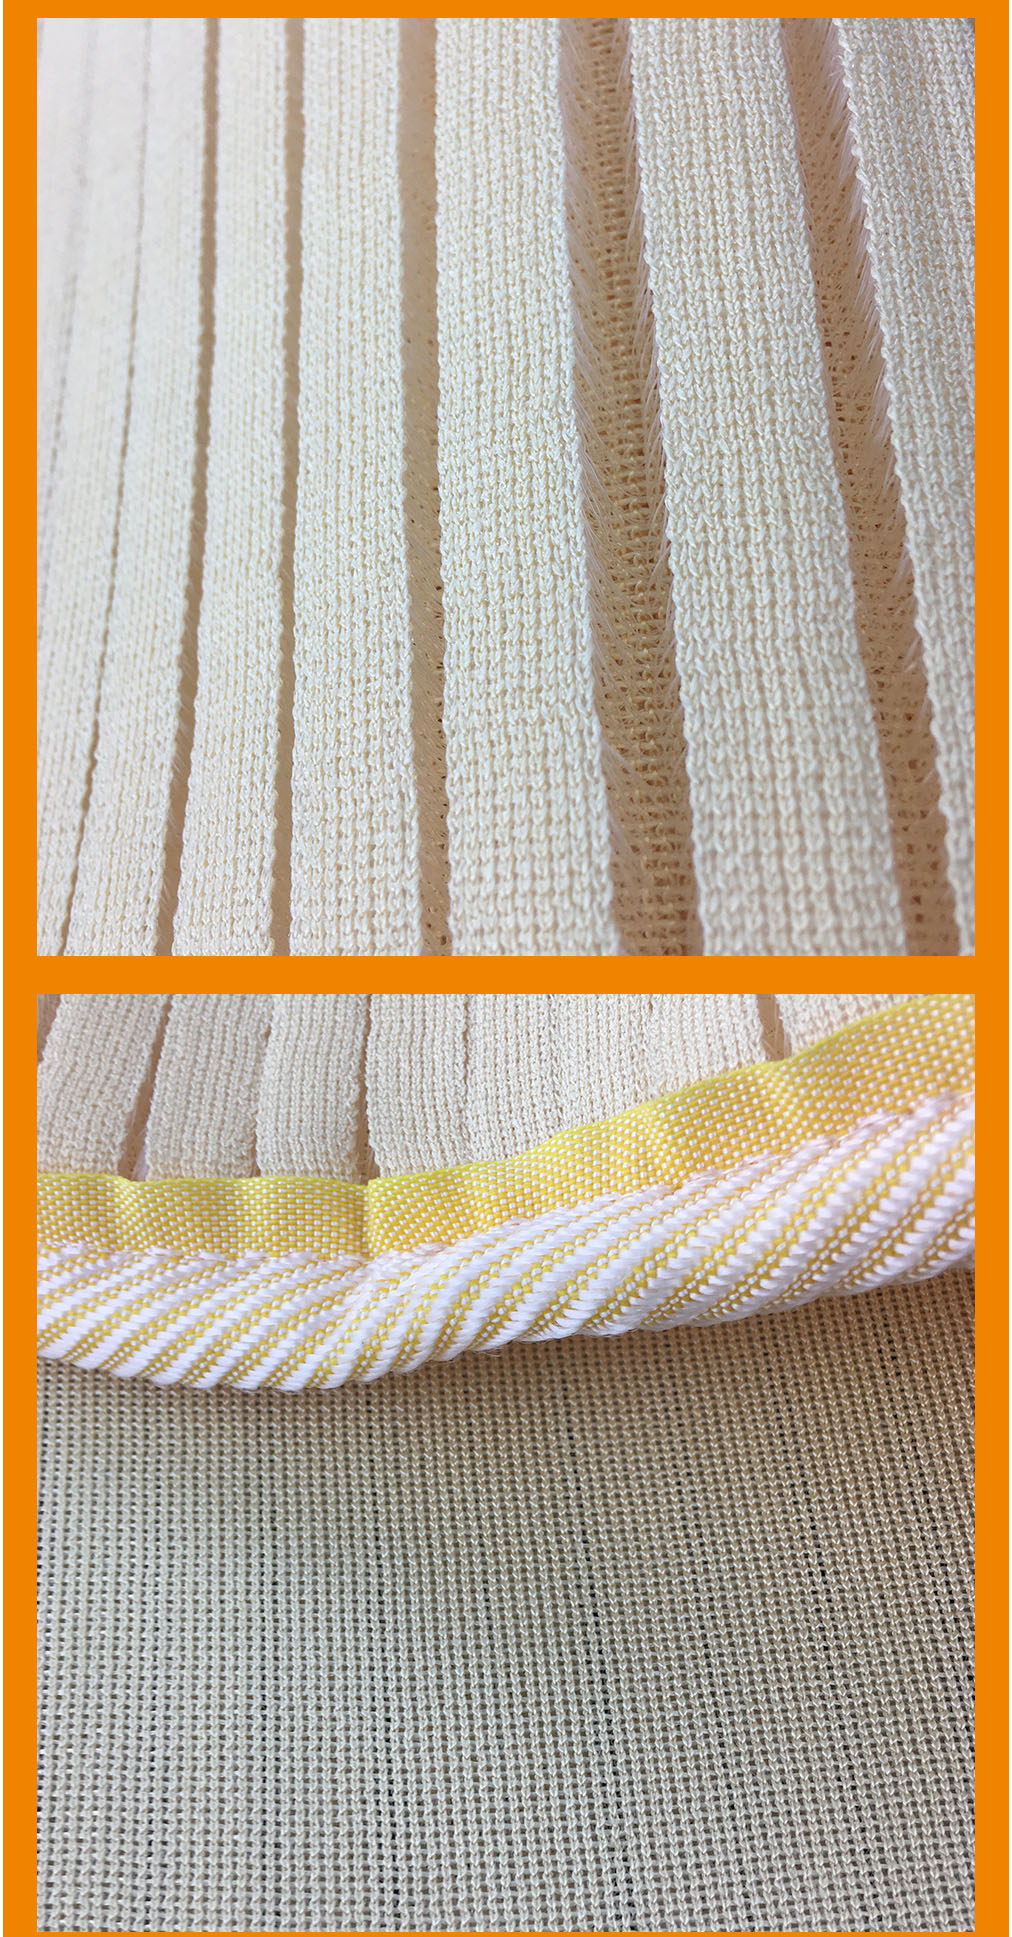 Oeko-tex passed yellow cooling 3d spacer mesh fabric queen mattress protector for home and hotel